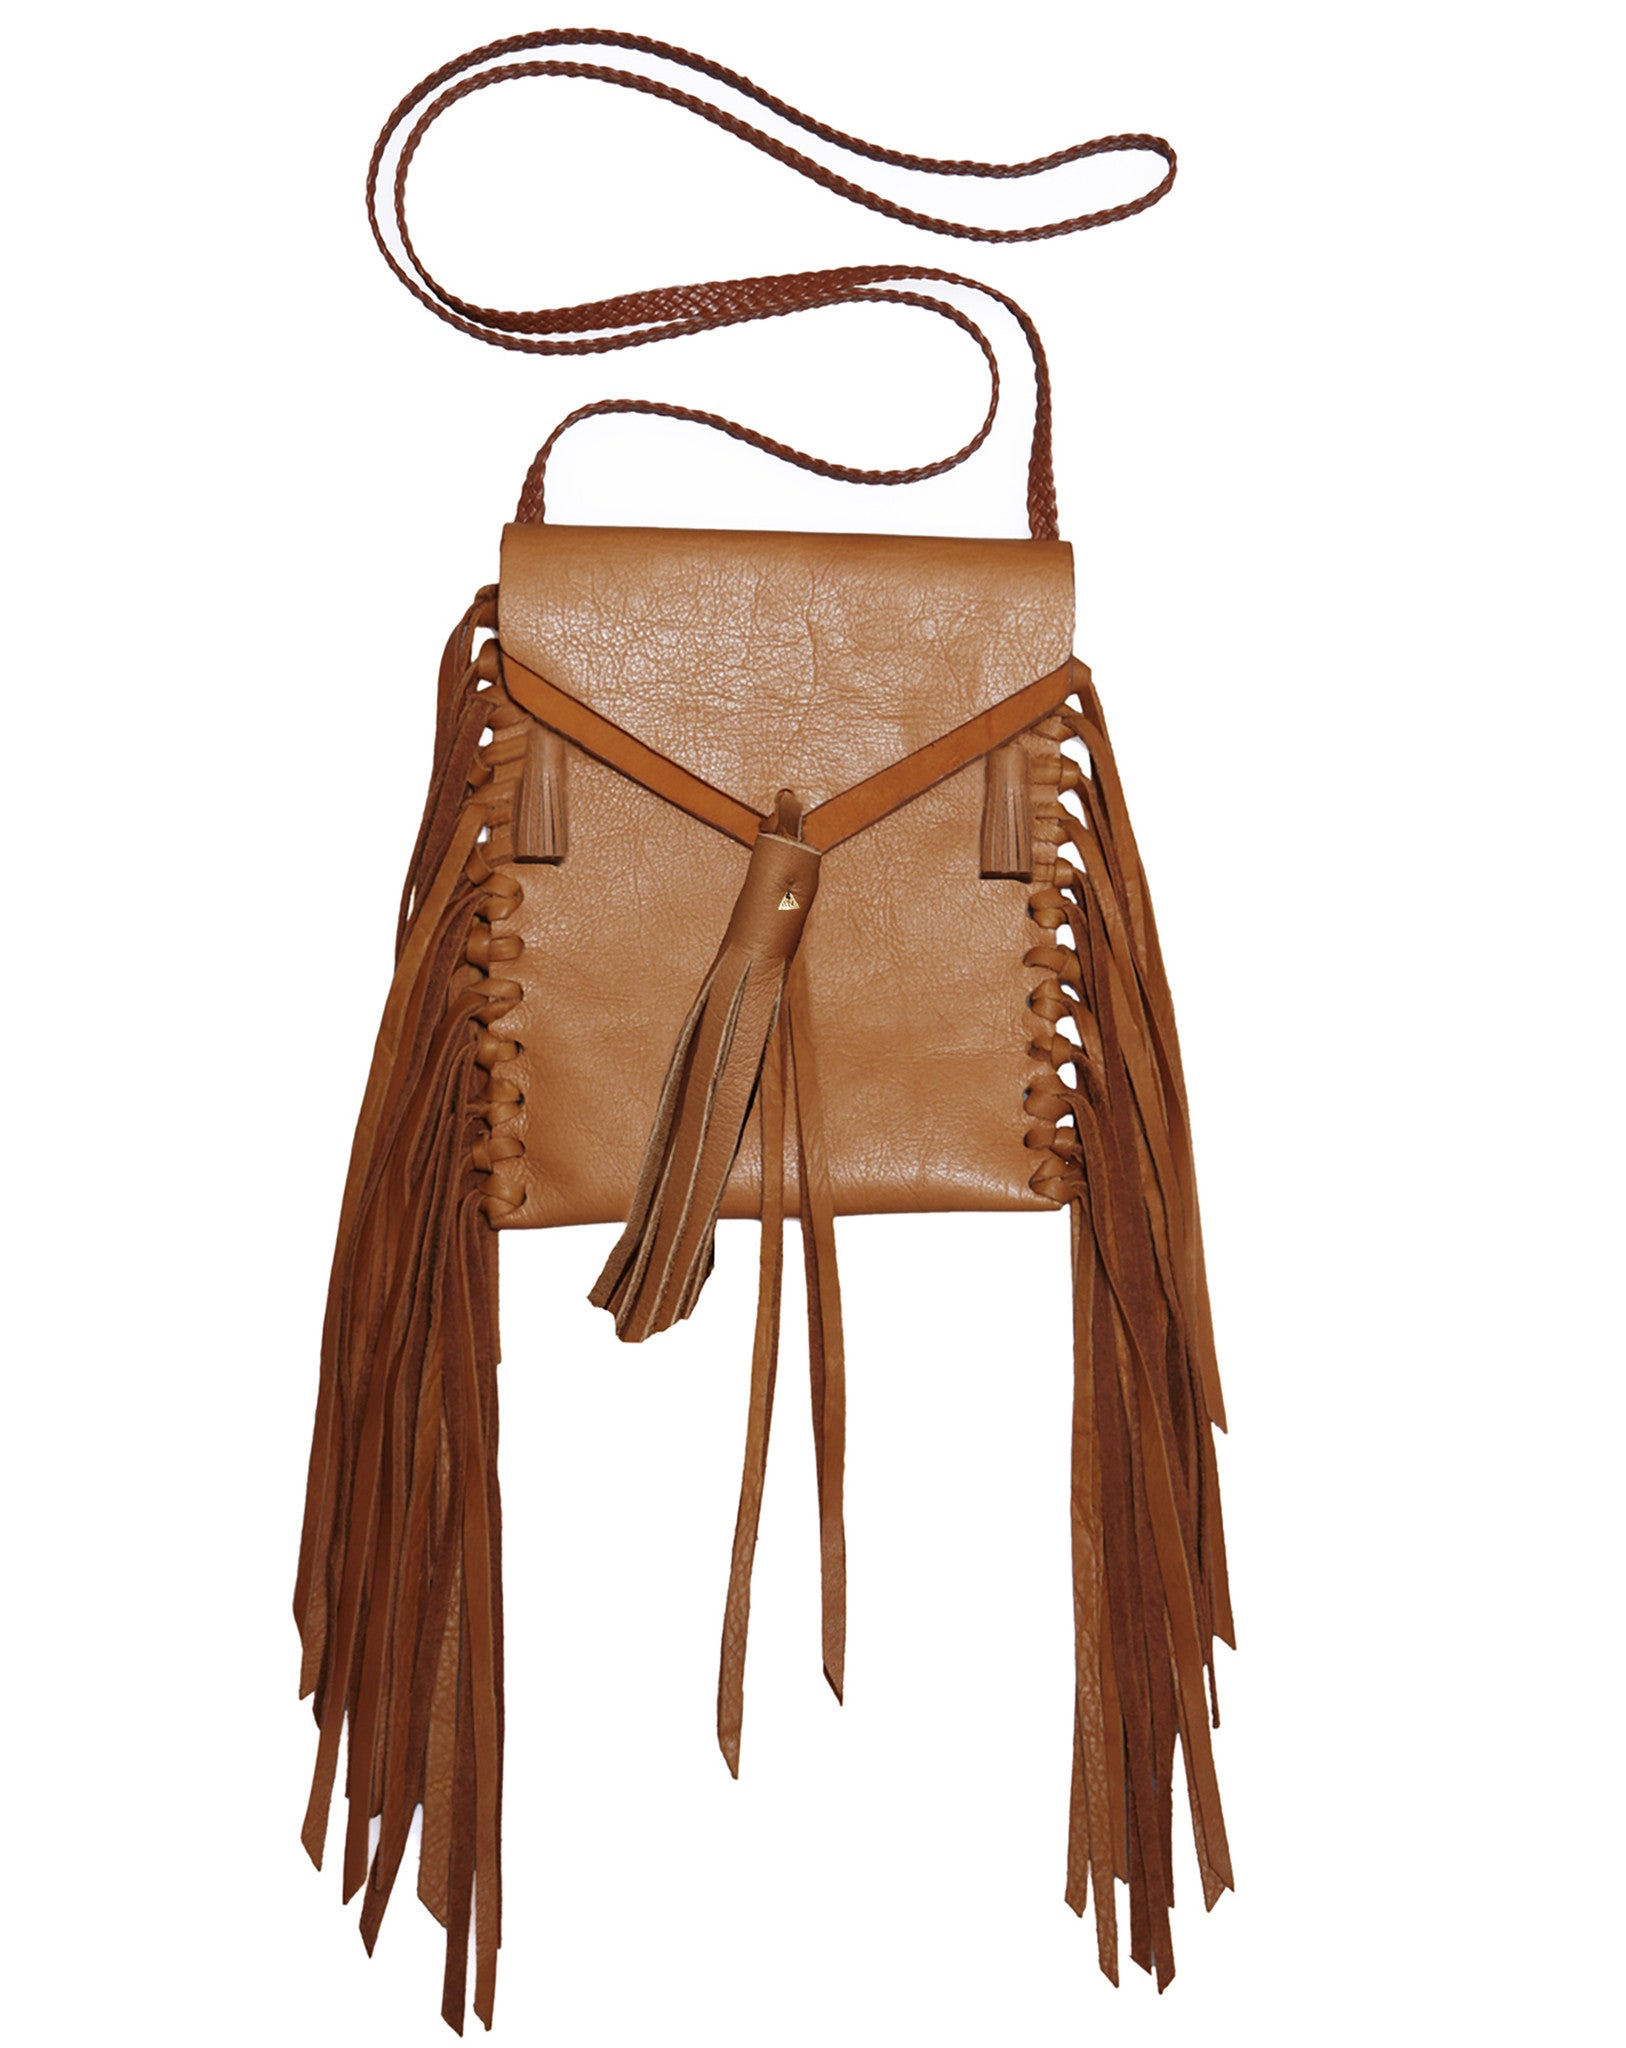 Canyon Carmel Brown Tan Tobacco Bag Wendy Nichol Leather Handbag Crossbody Purse Designer Handmade in NYC Fringe Tassel Tassels Hippie Simple